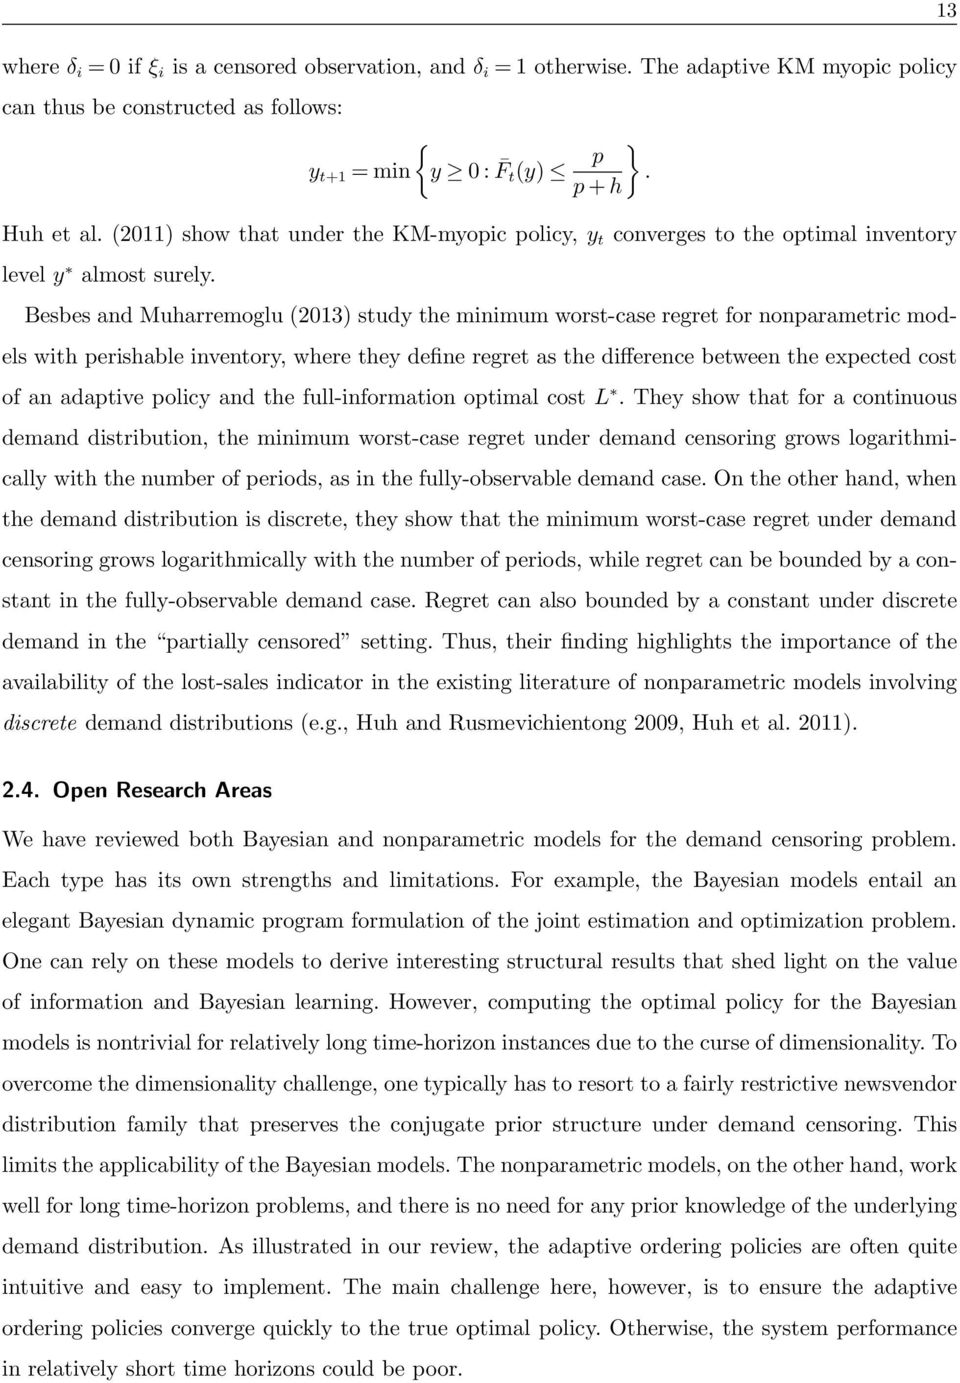 Besbes and Muharremoglu (2013) study the minimum worst-case regret for nonparametric models with perishable inventory, where they define regret as the difference between the expected cost of an